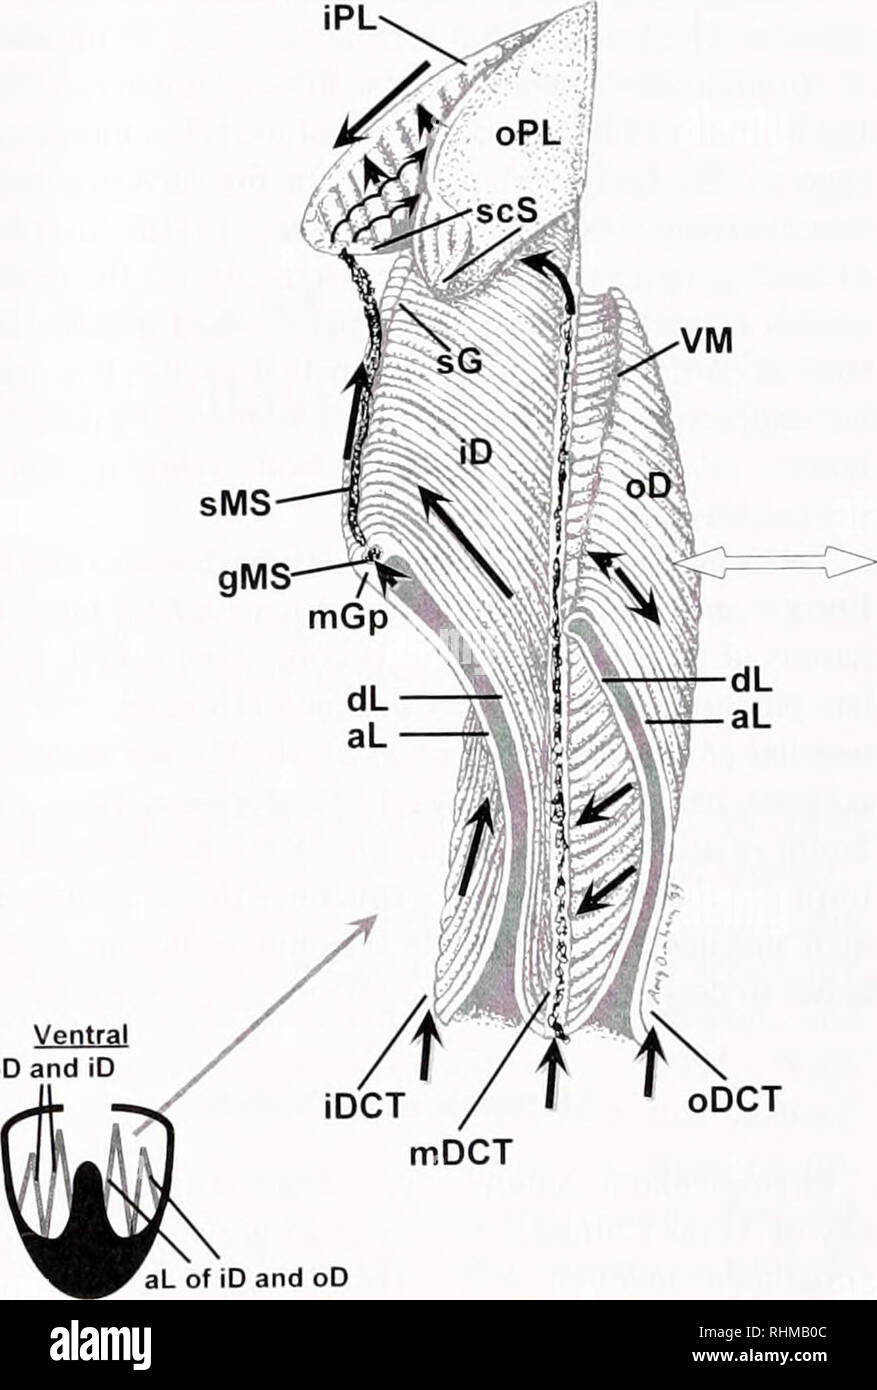 . The Biological bulletin. Biology; Zoology; Biology; Marine Biology. 118 S. M. BAKER ET AL the inhalent siphon, any movement of the OIT resulted in the cessation of feeding. And when the pallial cavity was entered through the pedal gape, the foot usually touched the OIT, coating it with mucus. Results were based on the examination of 21 mussels. Particle velocities on feeding structures were determined from the number of video frames required for a particle to traverse a known distance. Distances were calibrated ac- cording to Ward (1996): i.e.. the pallial organs were dis- sected from severa - Stock Image